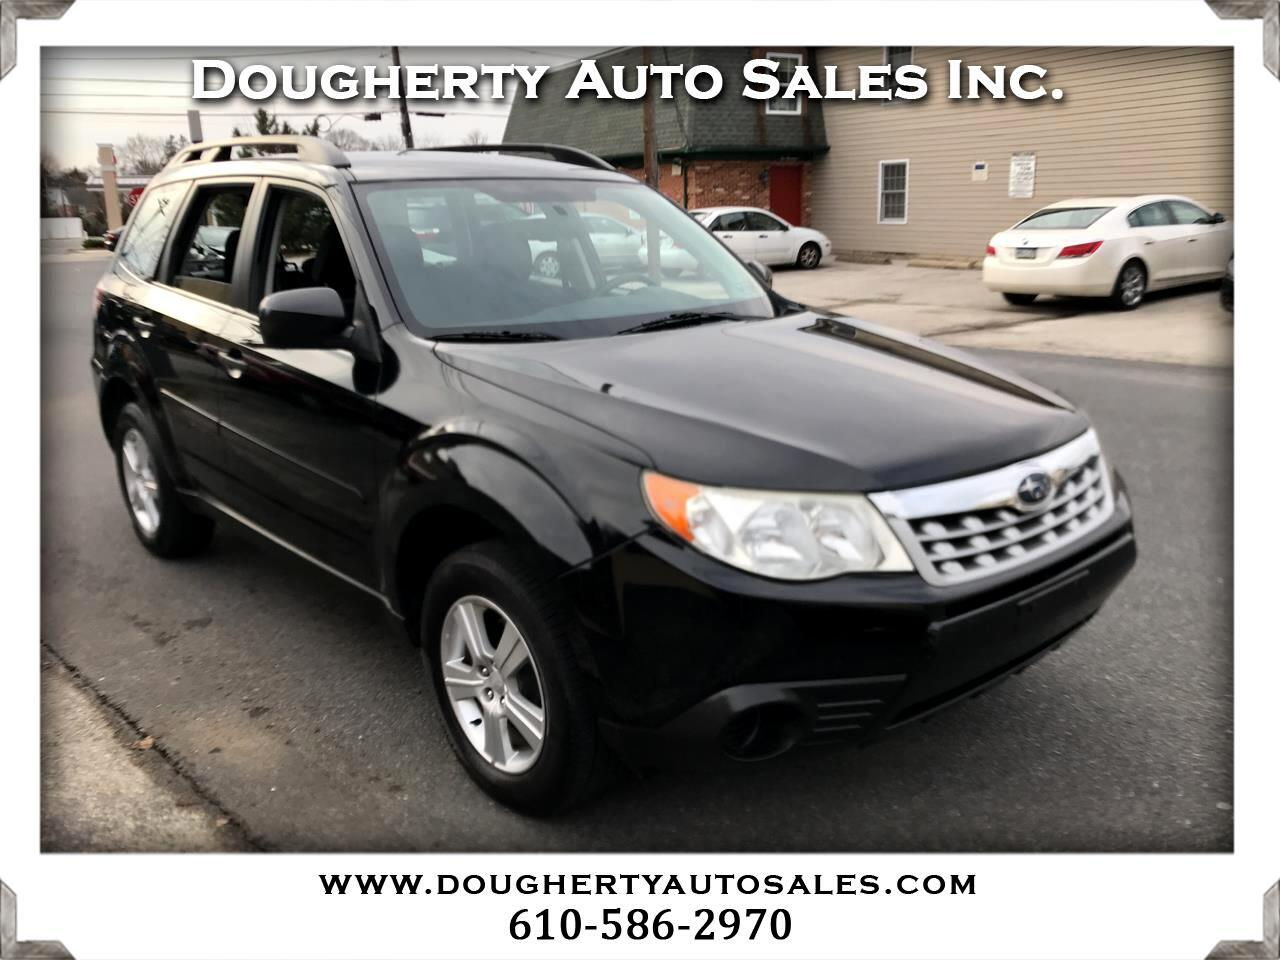 2011 Subaru Forester 4dr Auto 2.5X w/Alloy Wheel Value Pkg